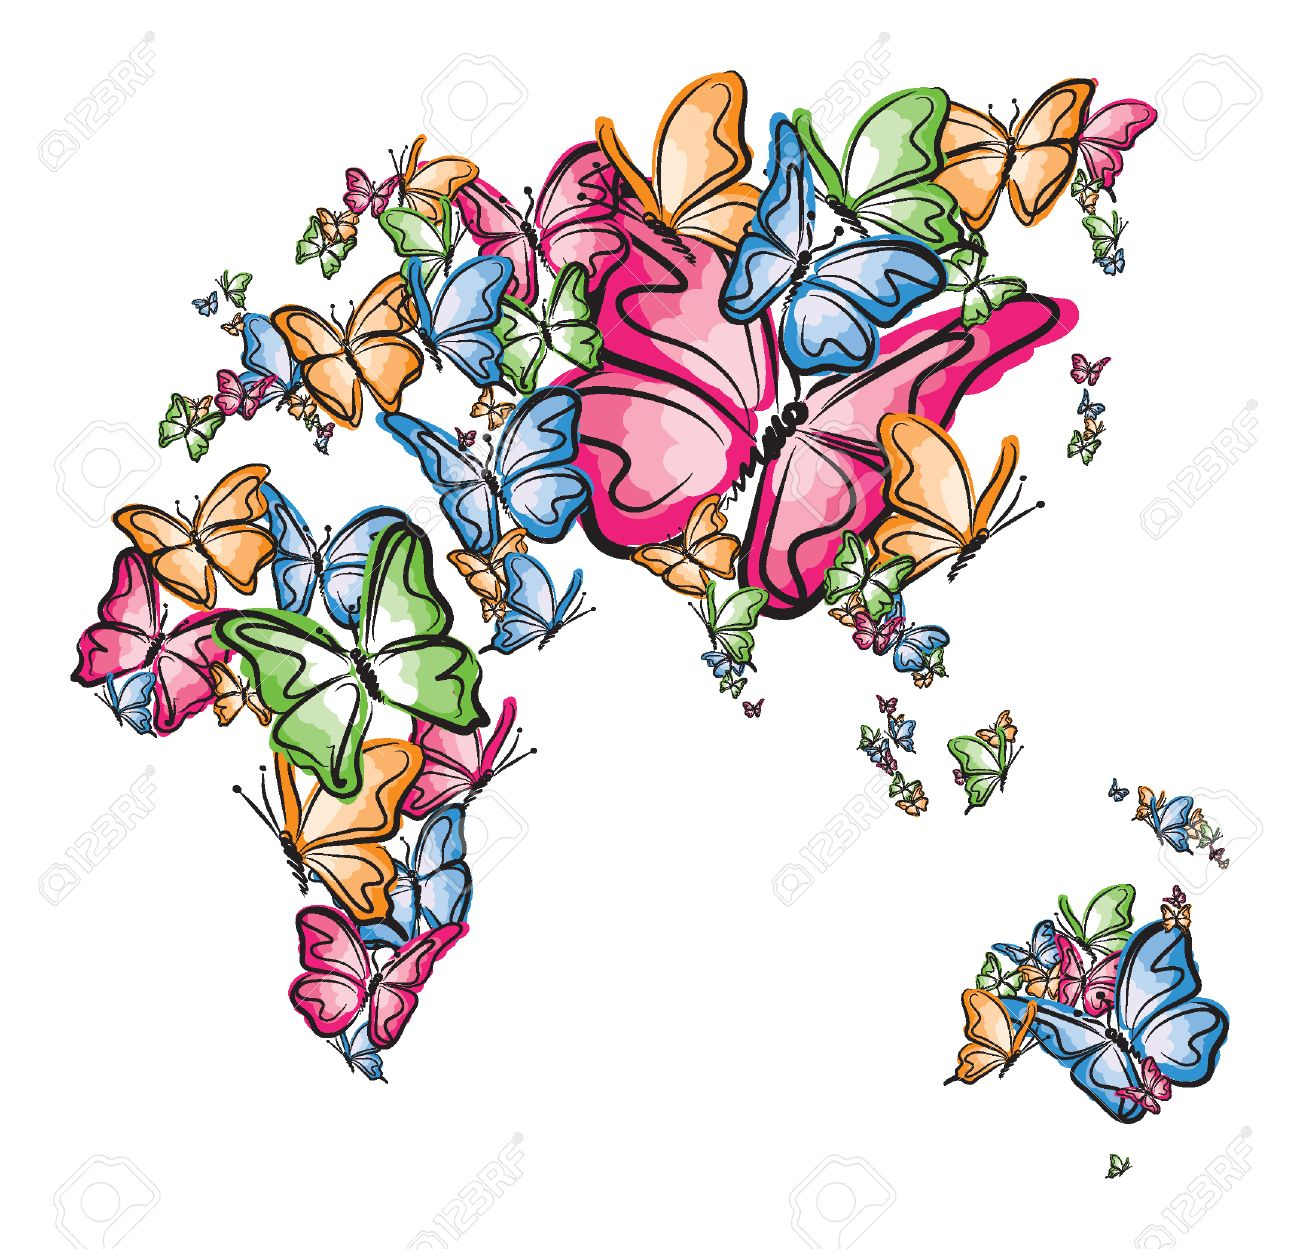 Europe asia africa and australia world map silhouette made of europe asia africa and australia world map silhouette made of butterfly illustration stock vector 30219673 gumiabroncs Image collections